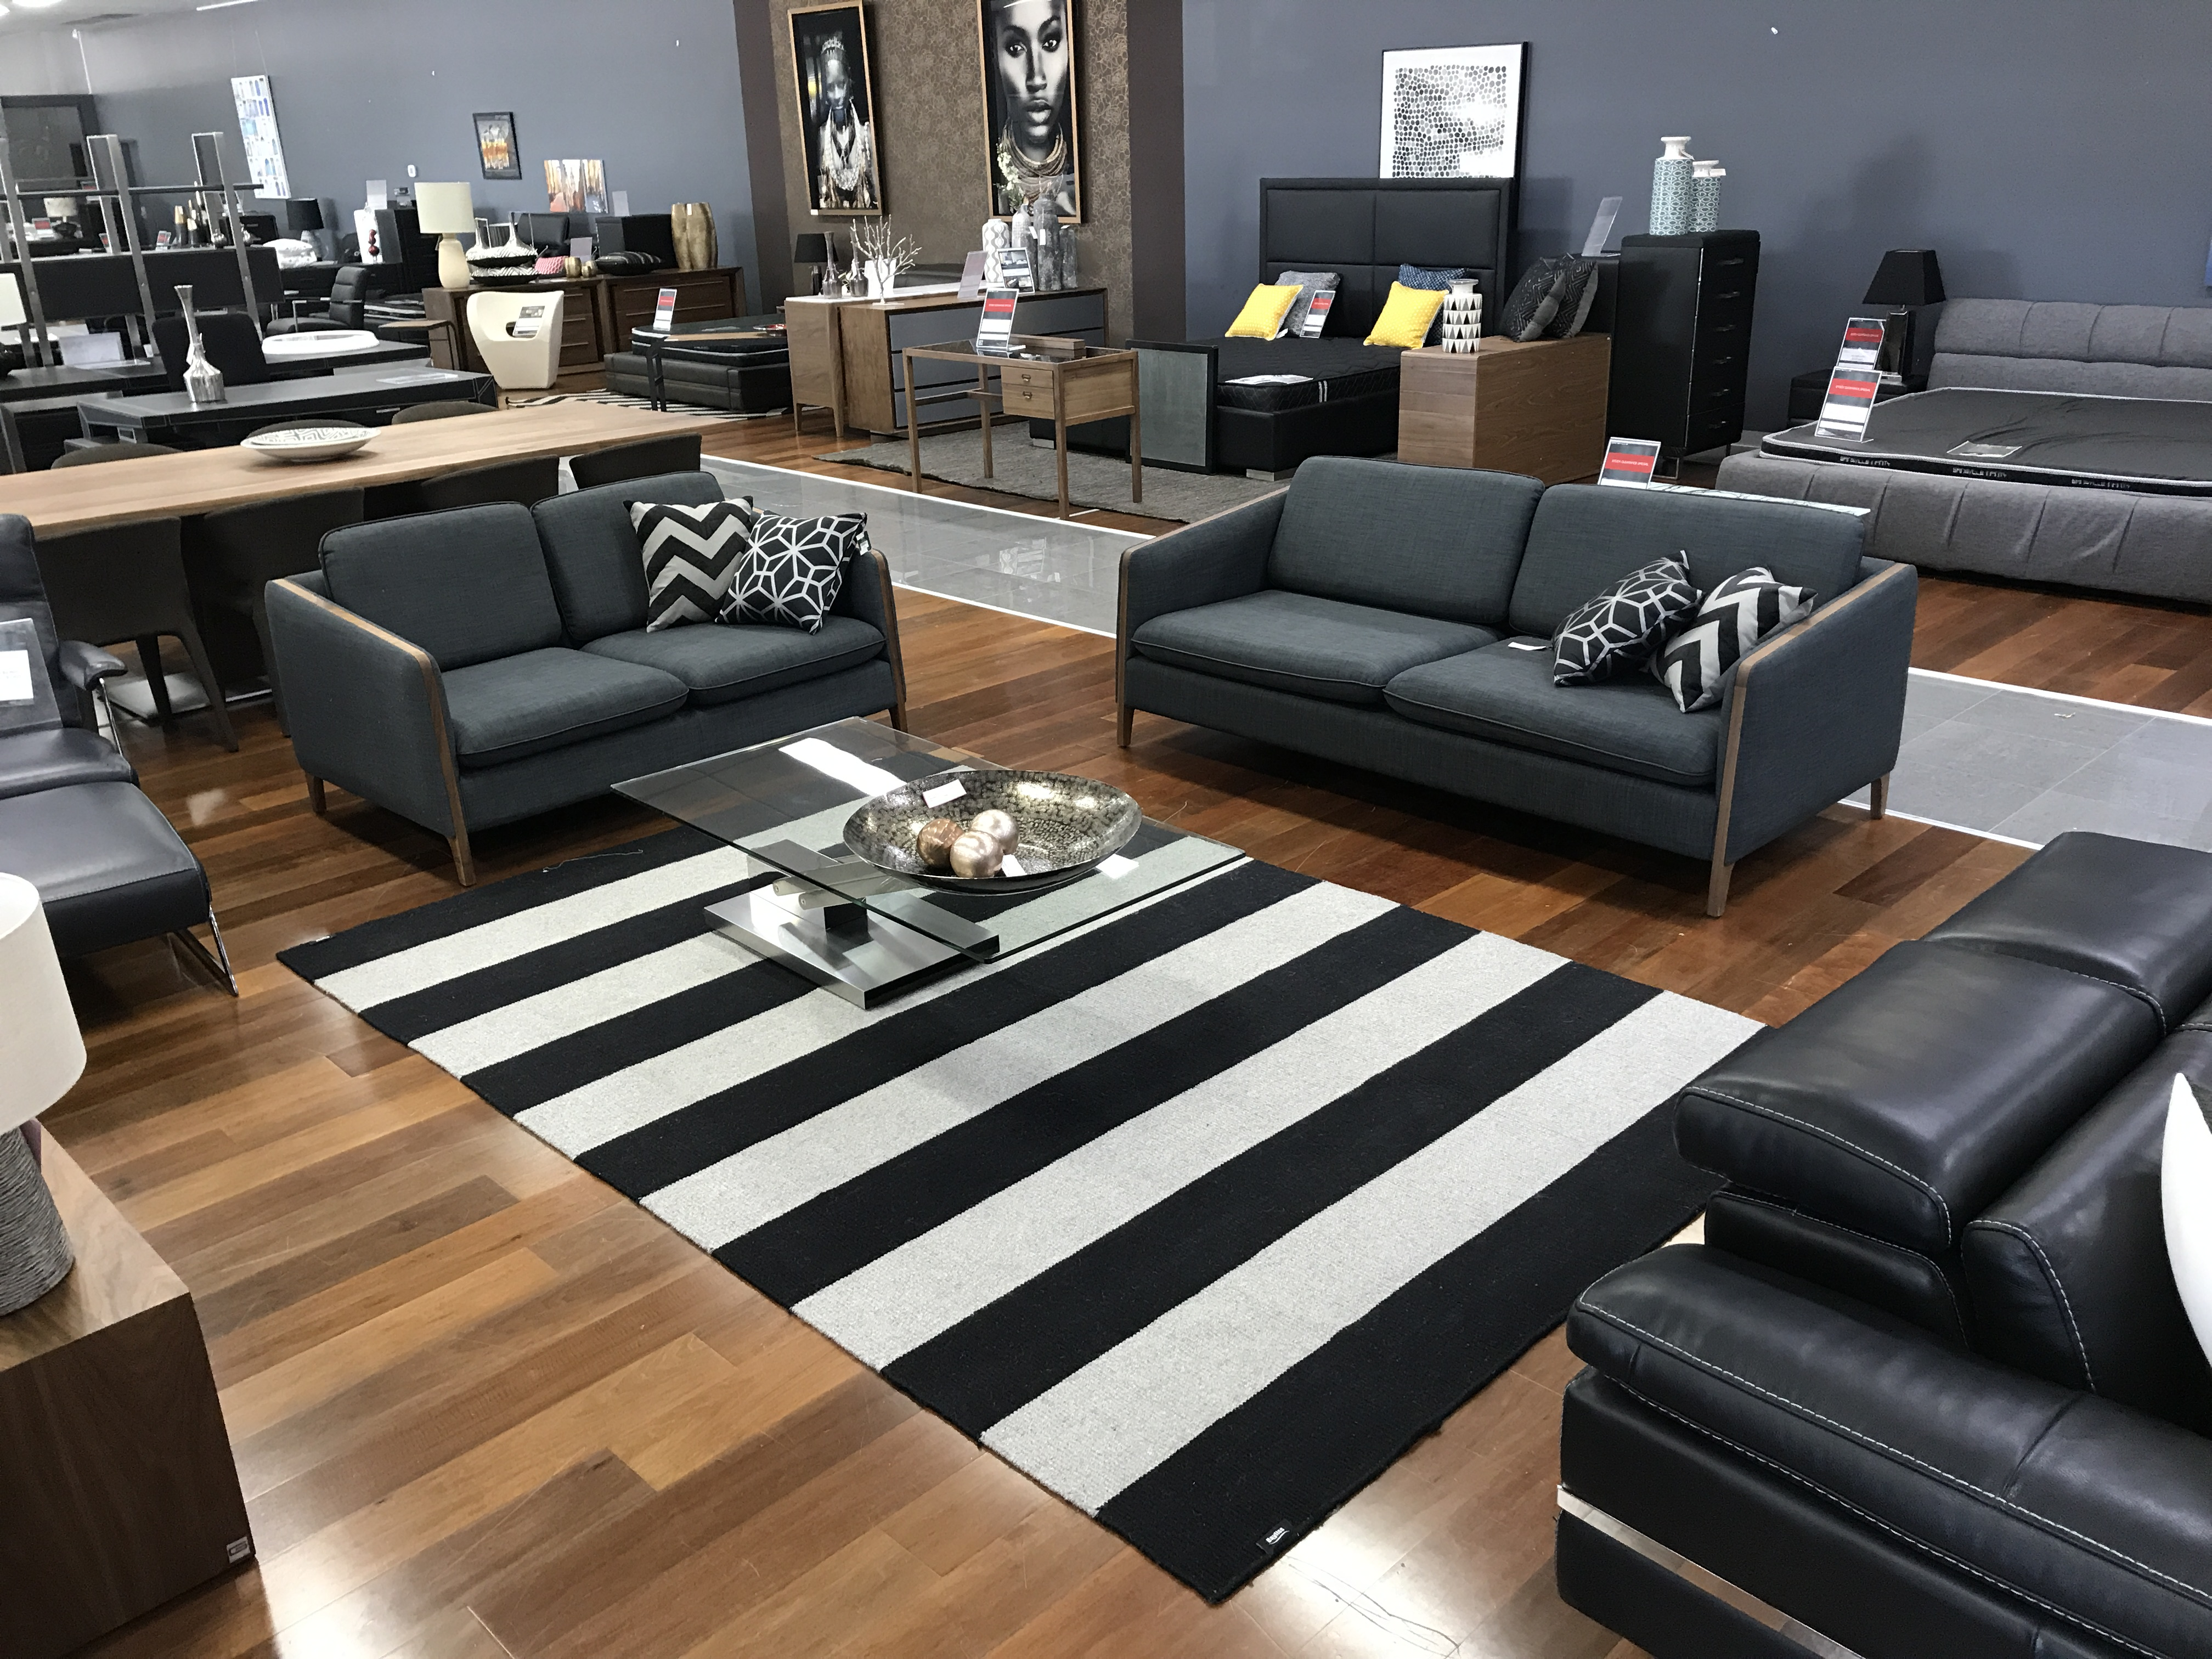 Superb How To Find The Best Designer Furniture Shops In Melbourne